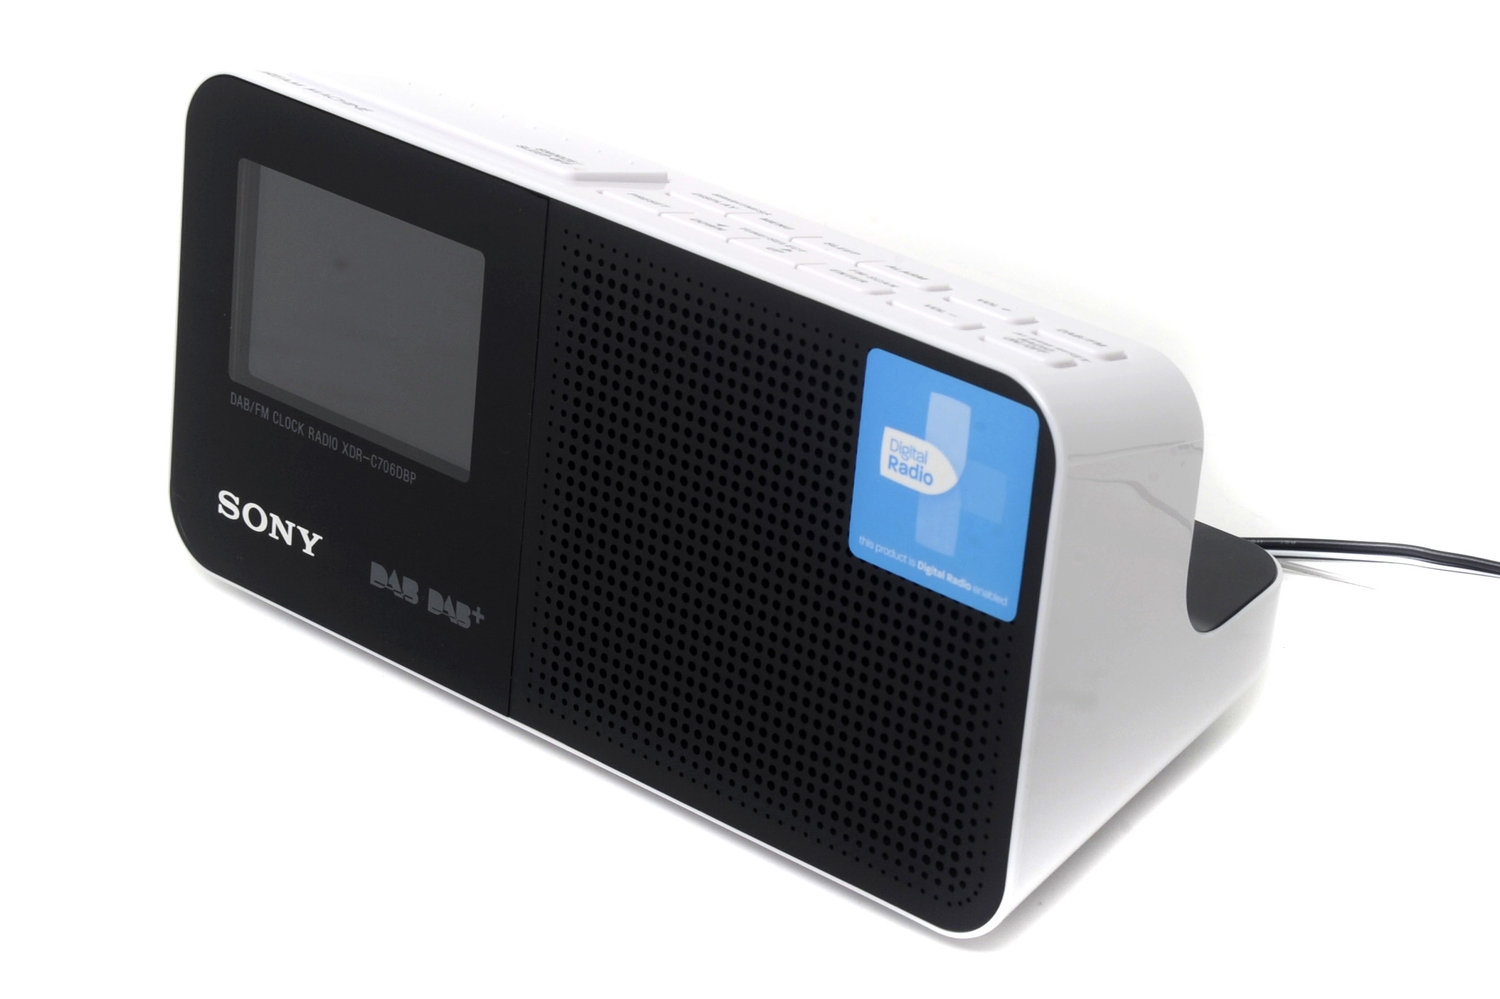 sony xdr c706dbp dab review sony xdr c706dbp dab digital radio an alarm clock that lets you. Black Bedroom Furniture Sets. Home Design Ideas